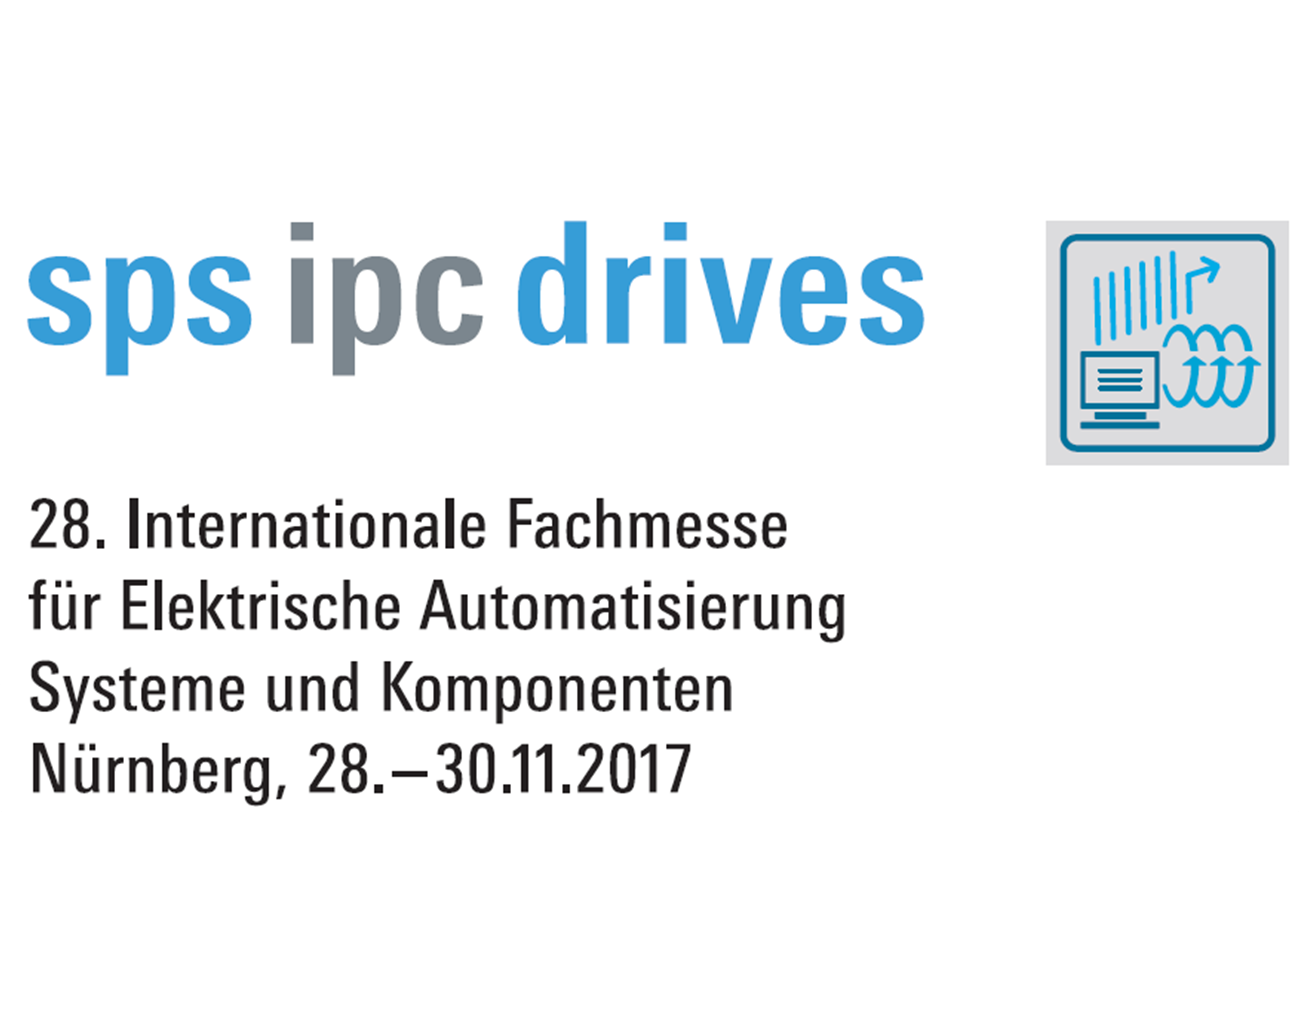 26 10 2017 SPS IPC DRIVES 2017